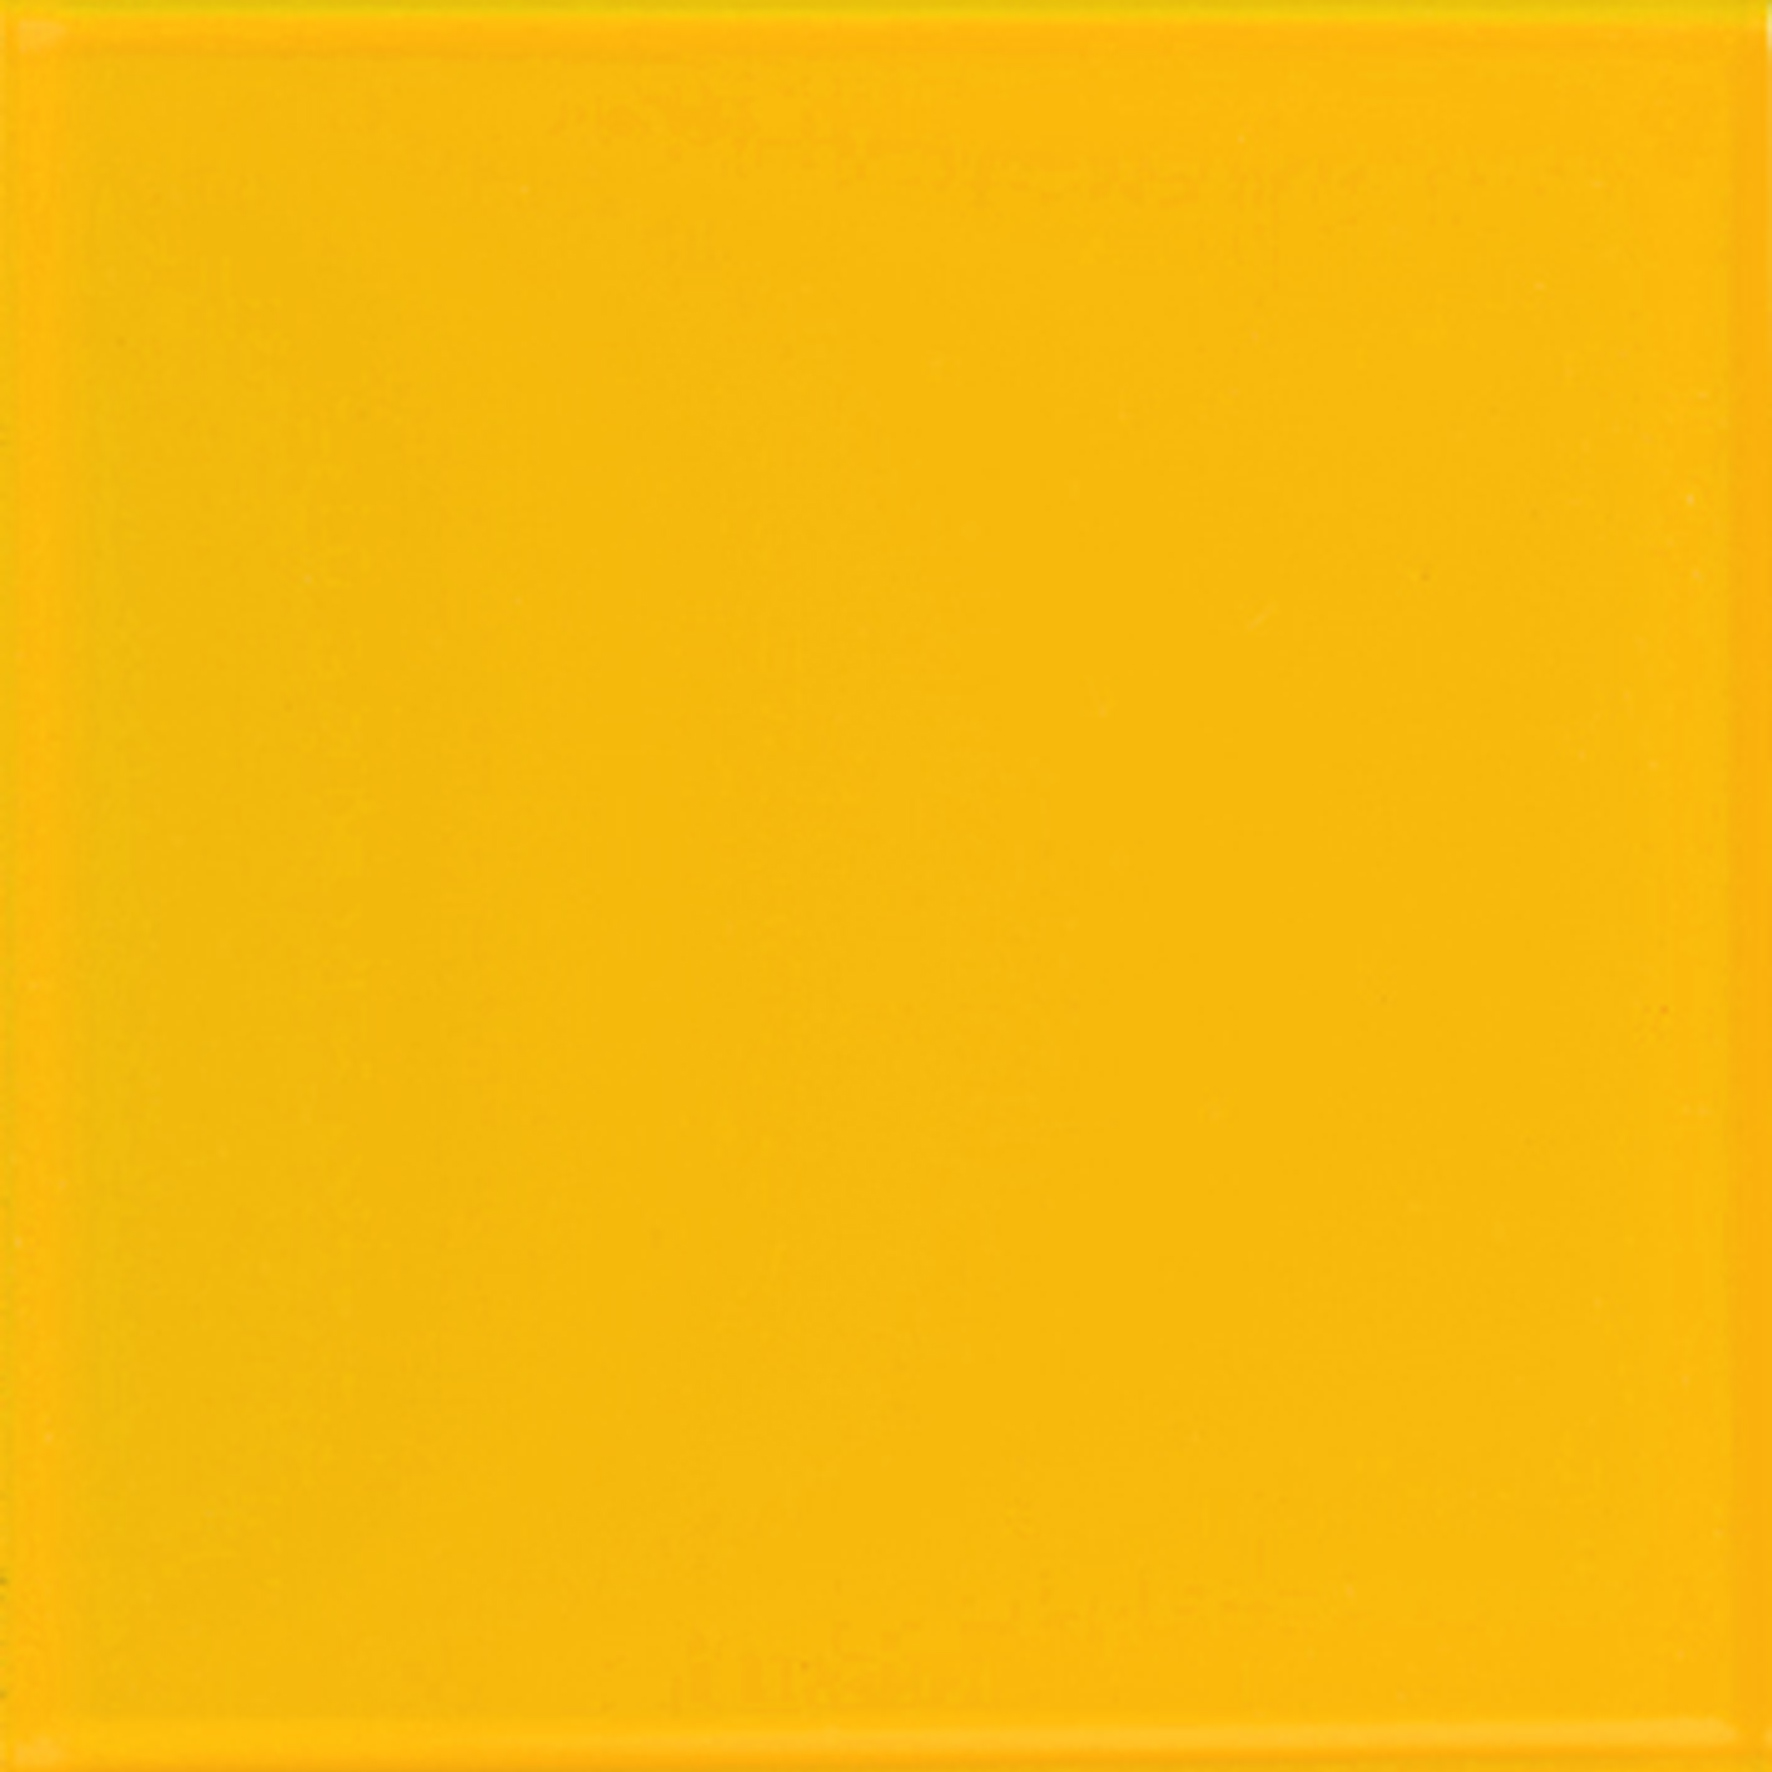 Home Decor Paint Colors Daffodil Yellow Chelsea Artisans